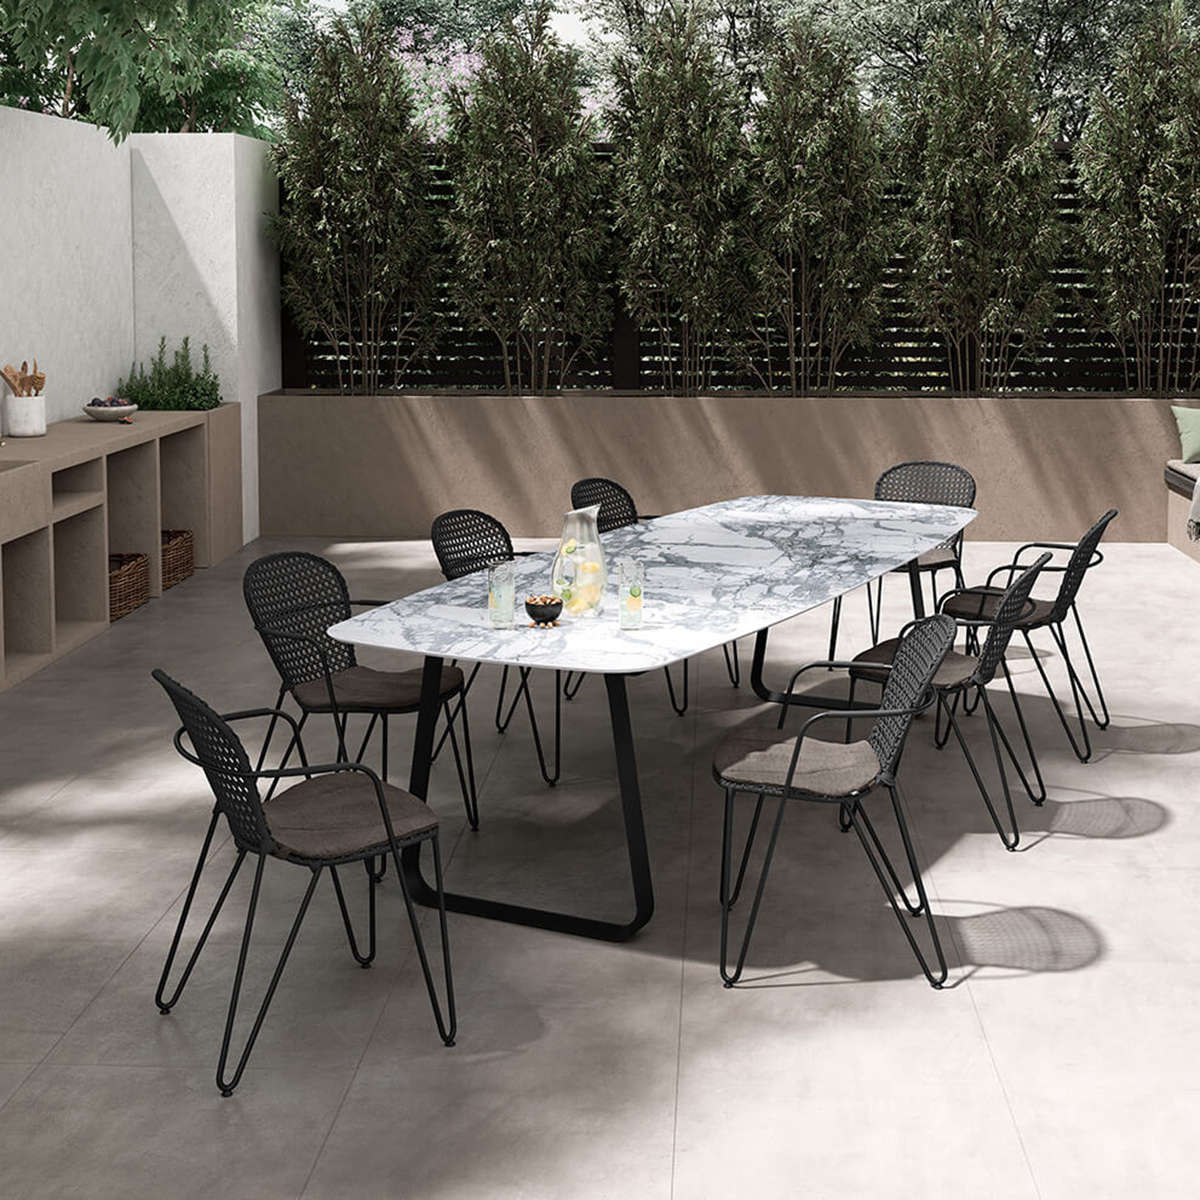 Modern Garden Co Curve Dining Table Amb White